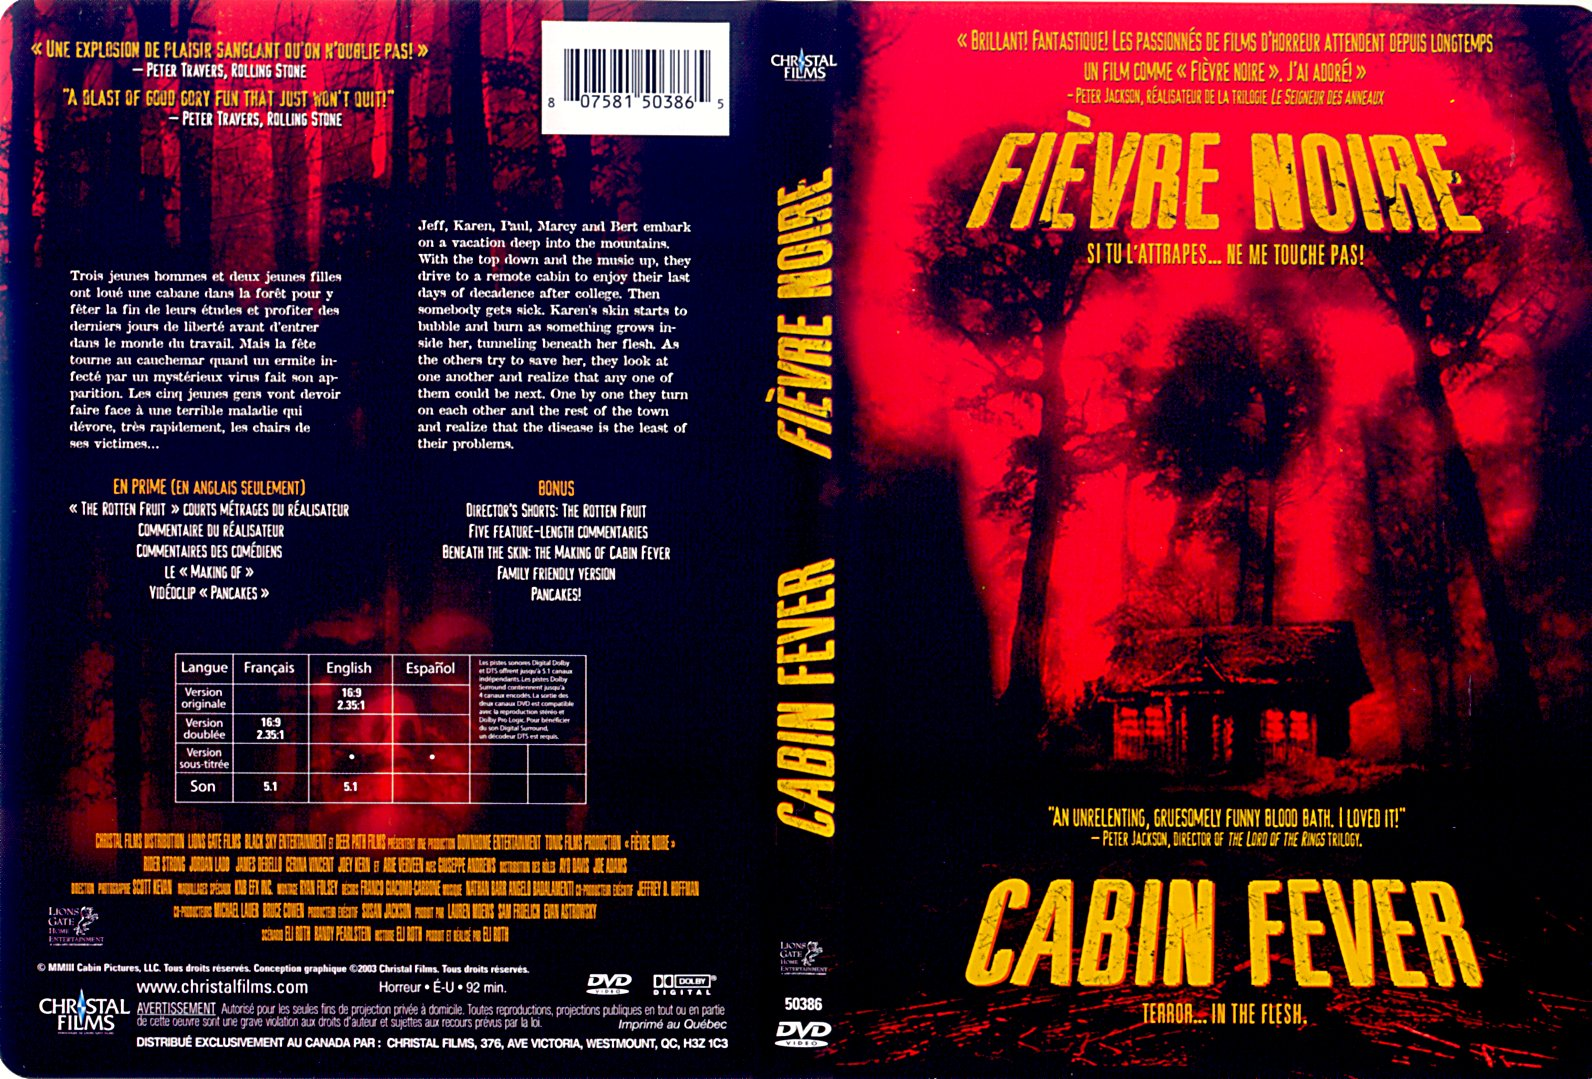 cabin fever images - photo #21